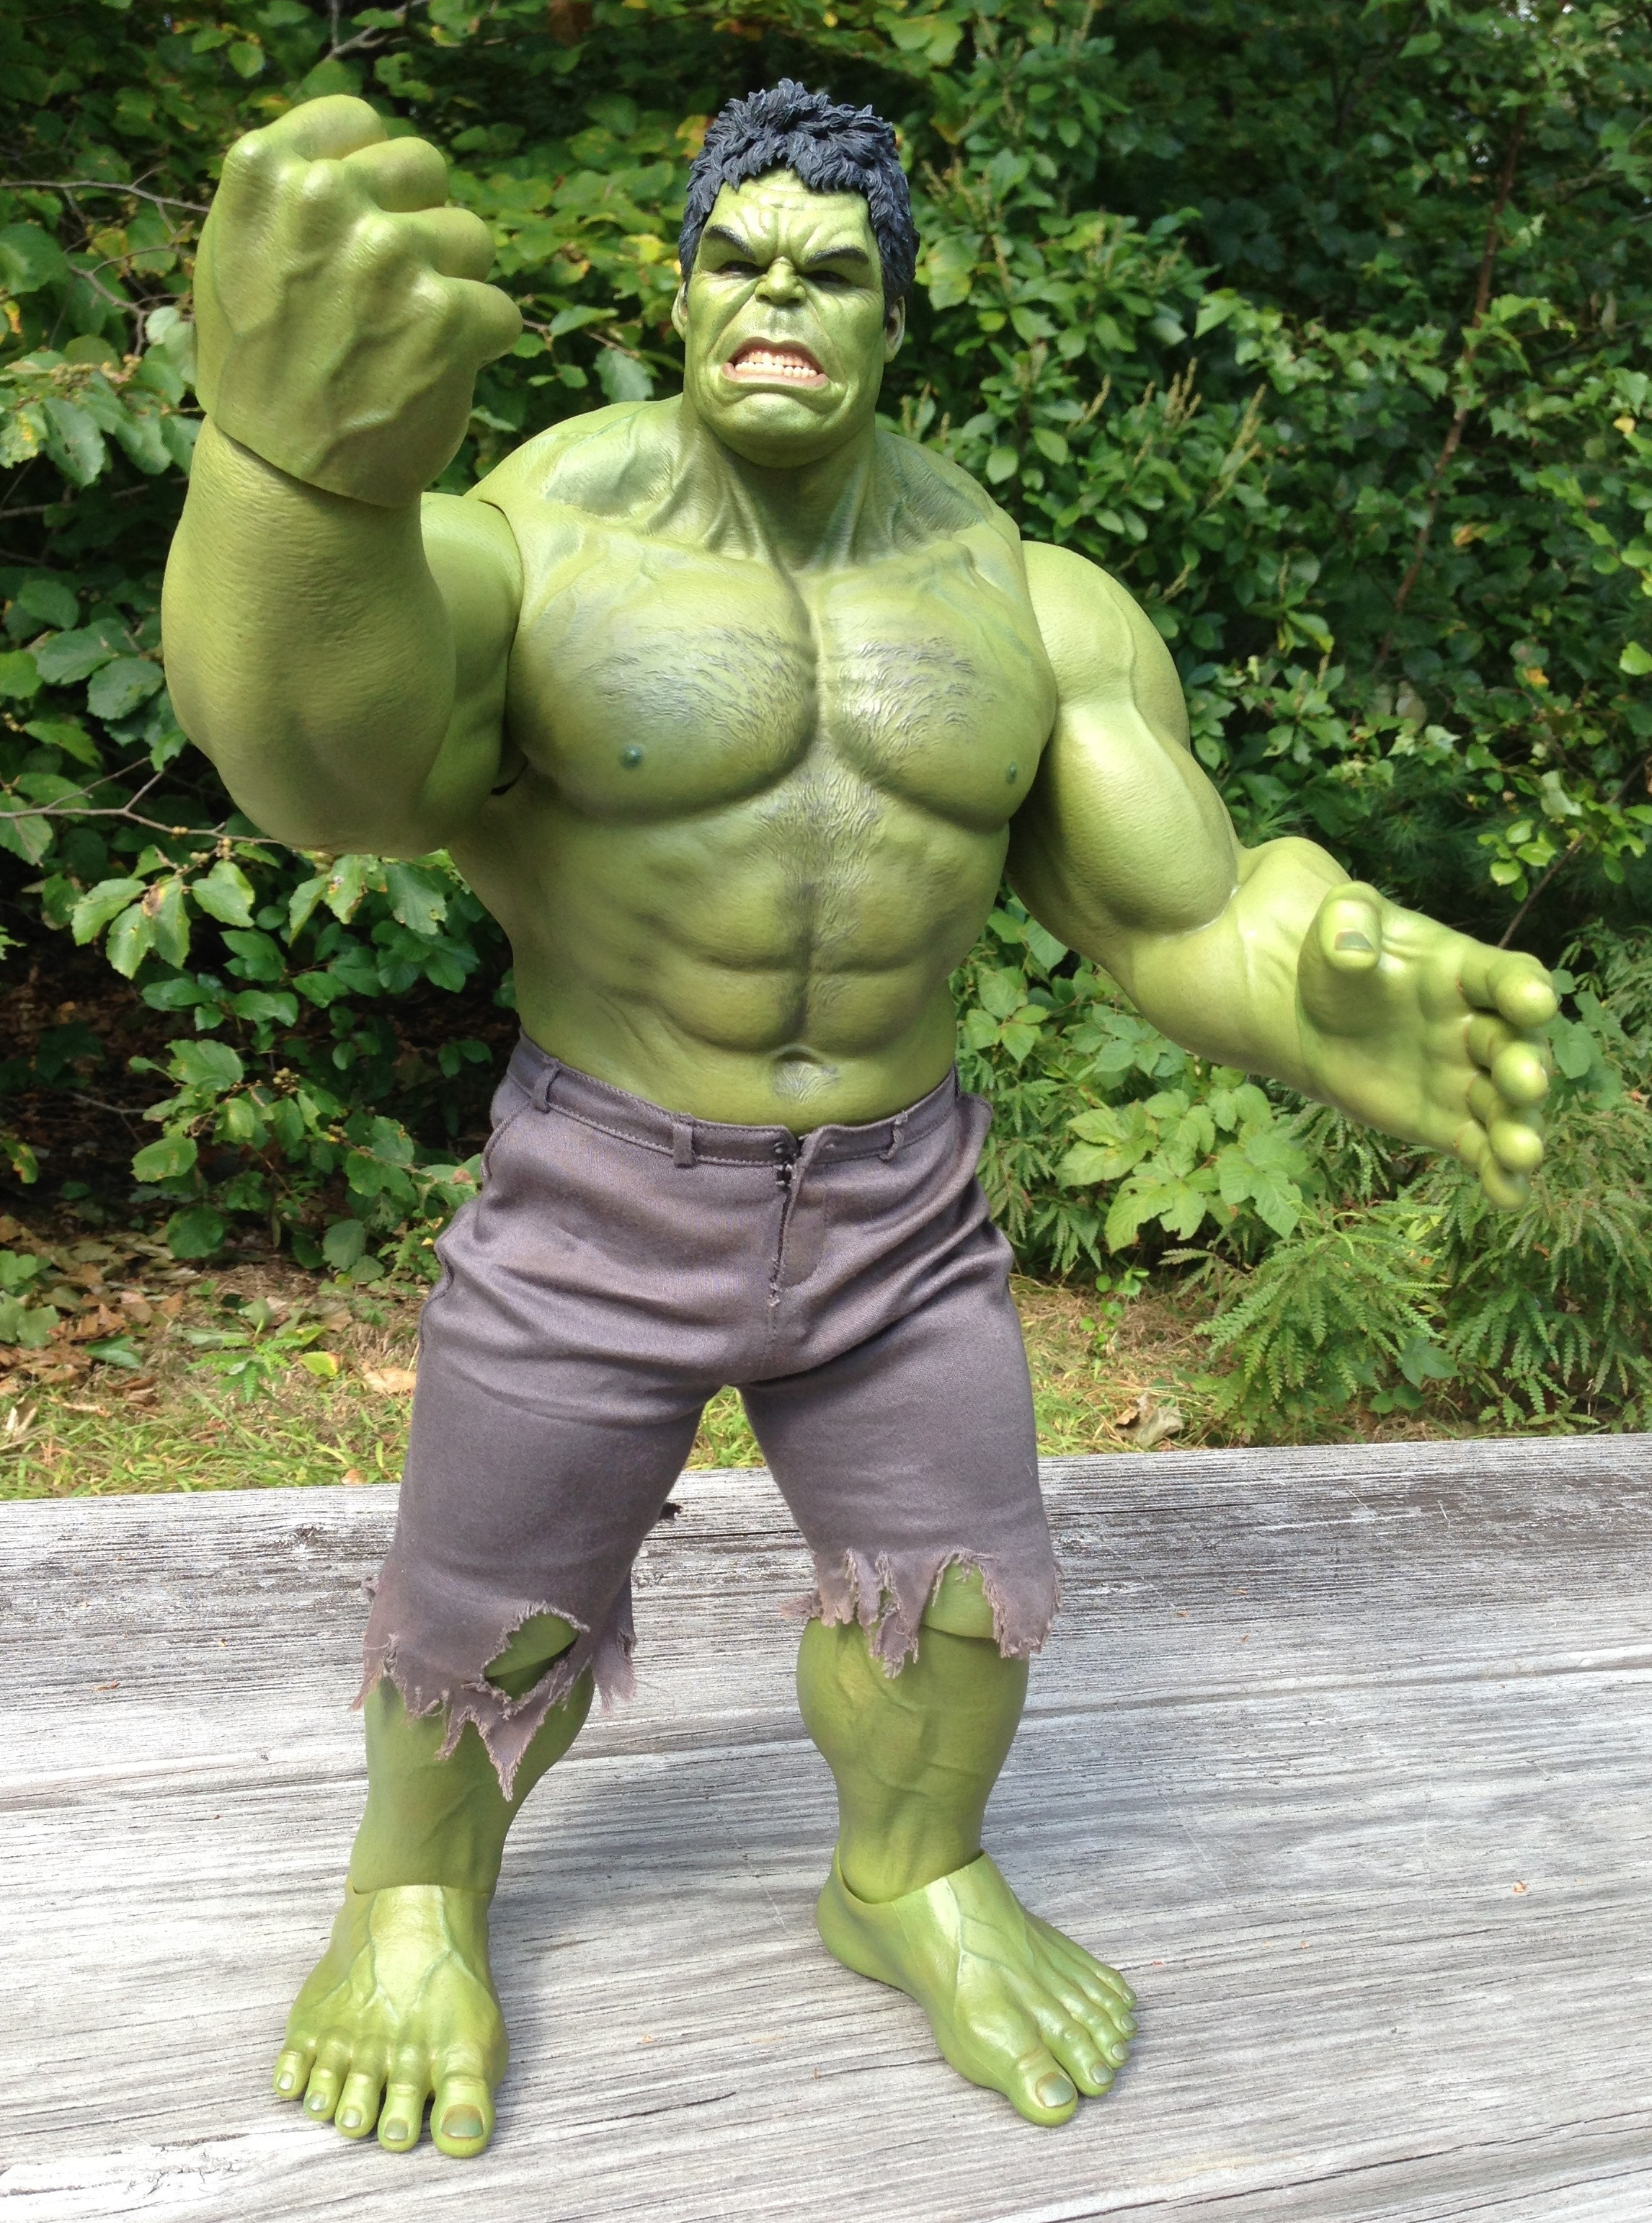 Hot Toys Hulk Review Avengers 16 Scale Figure Mms 186 Marvel Toy News 1 6 Movie Masterpiece Series